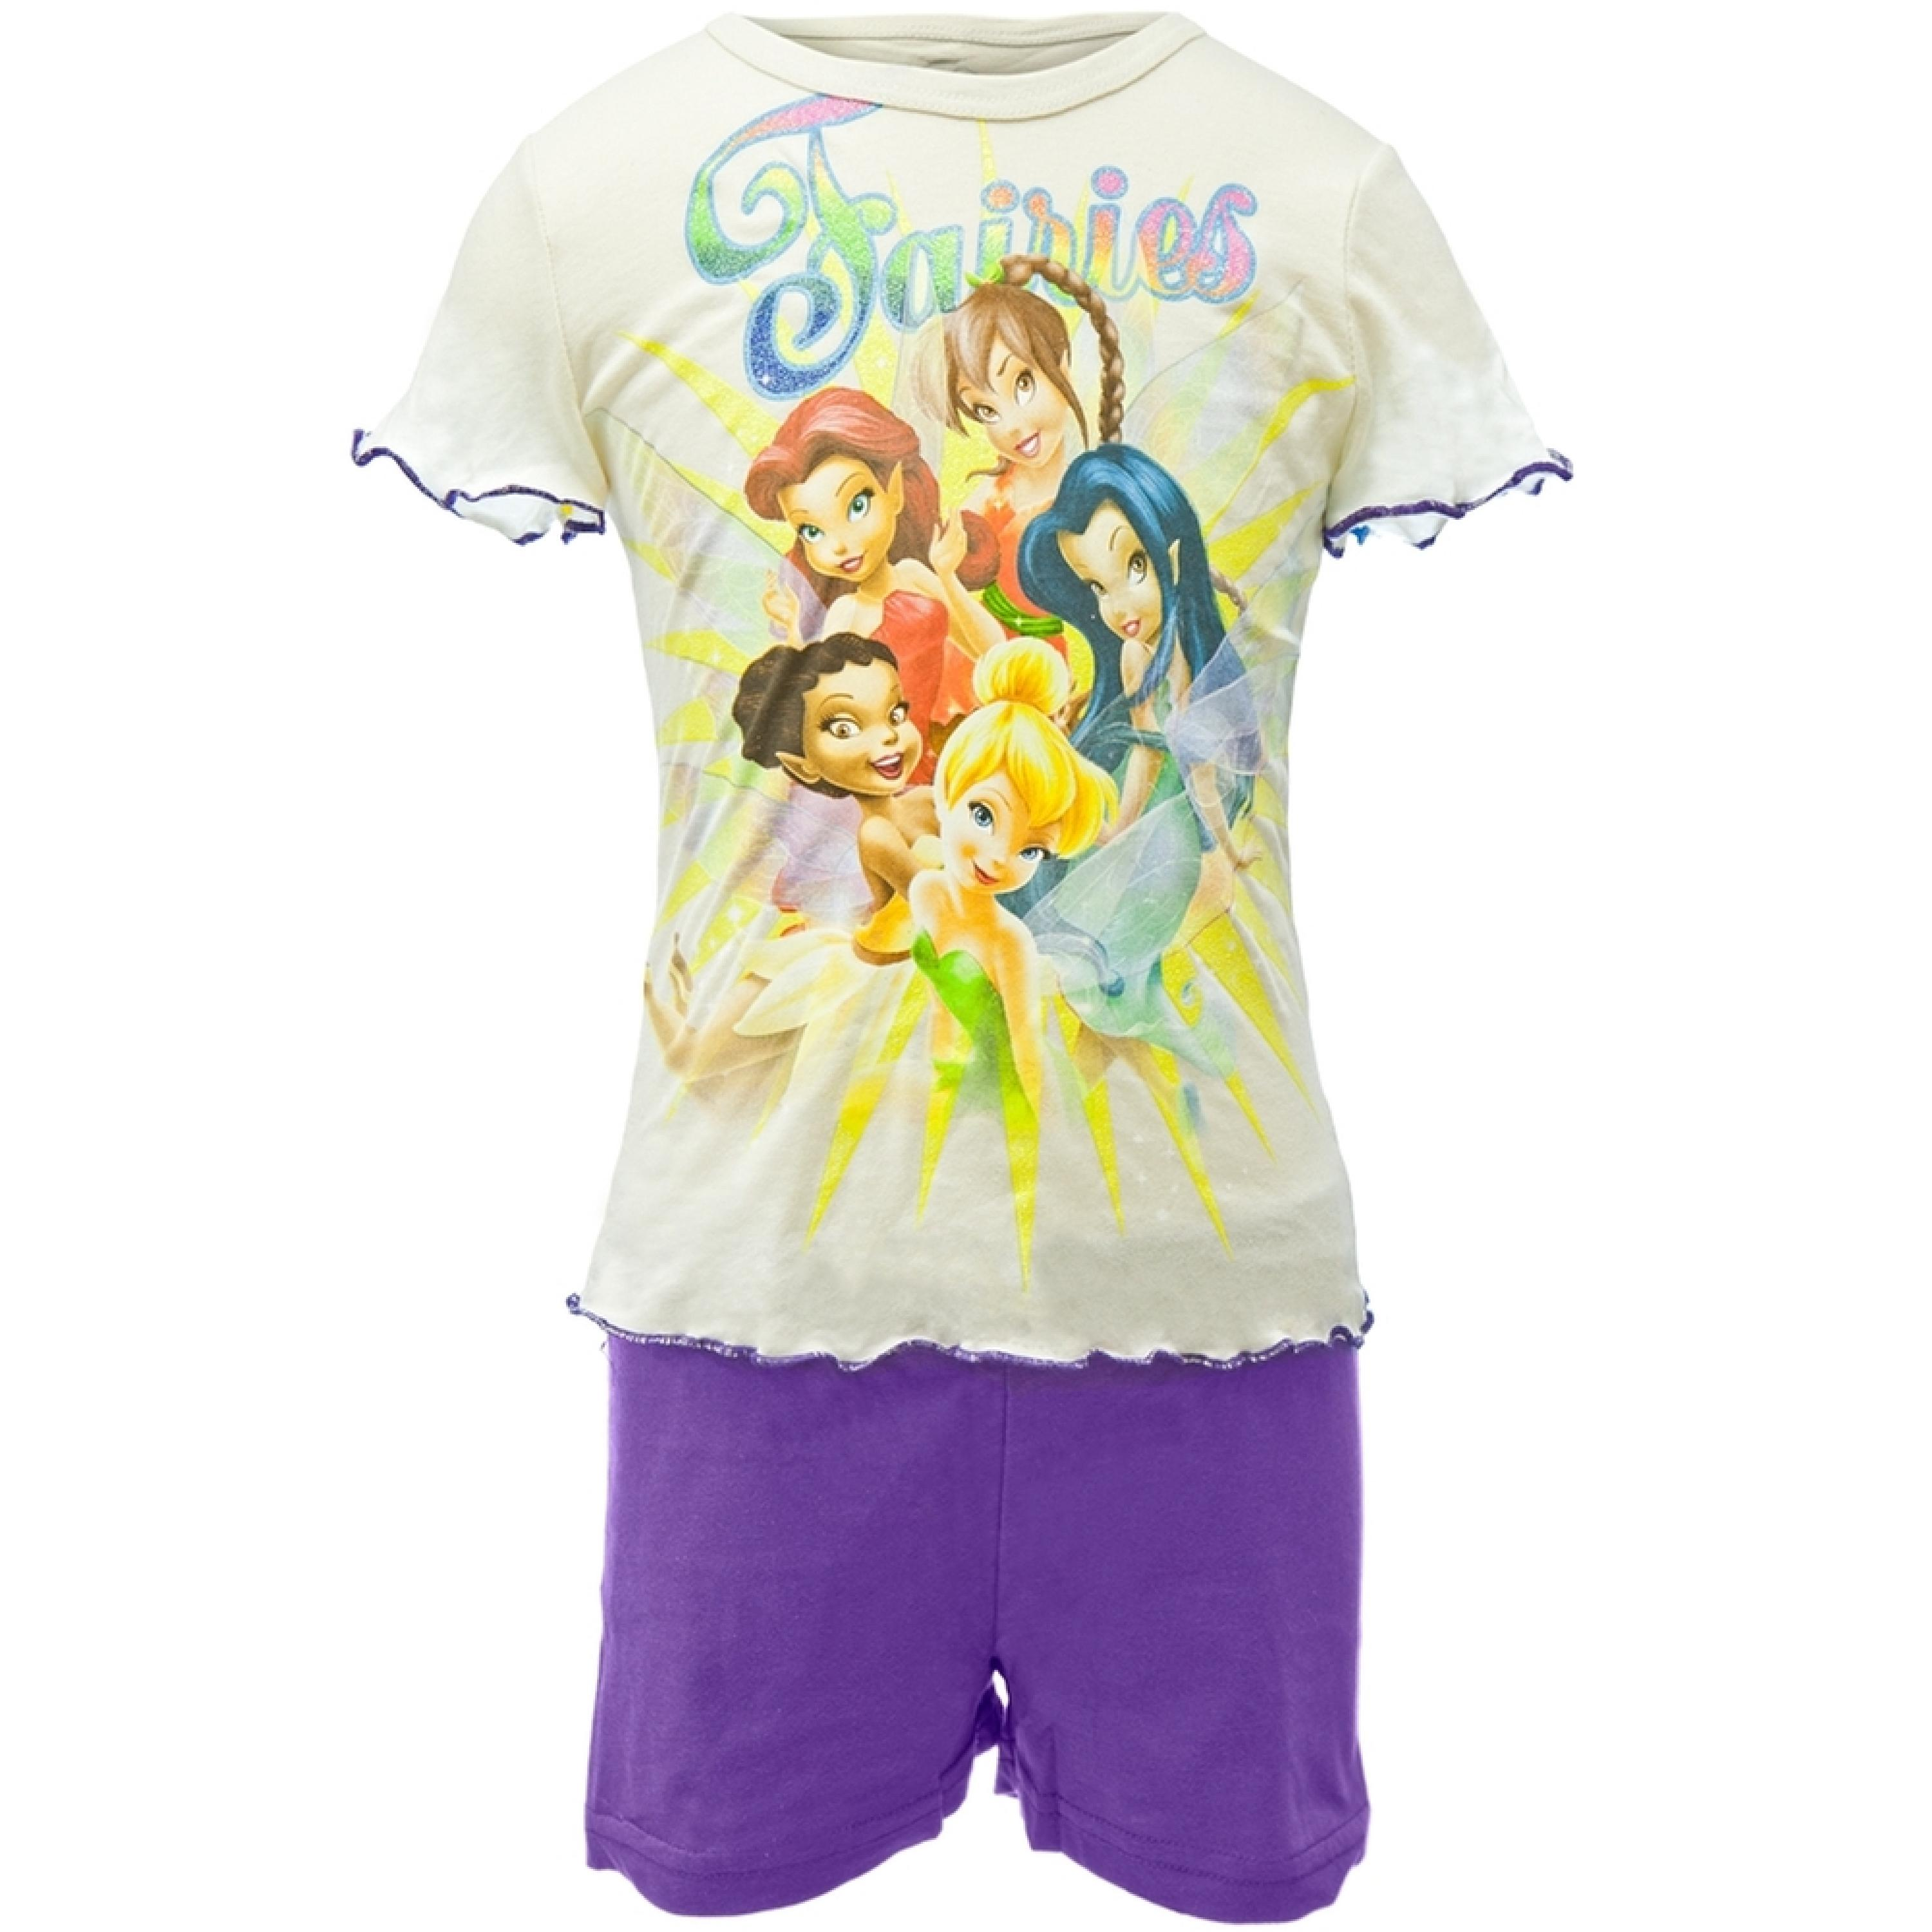 Disney Fairies -  Sunburst Group Girls Juvy Shirt/Shorts Set